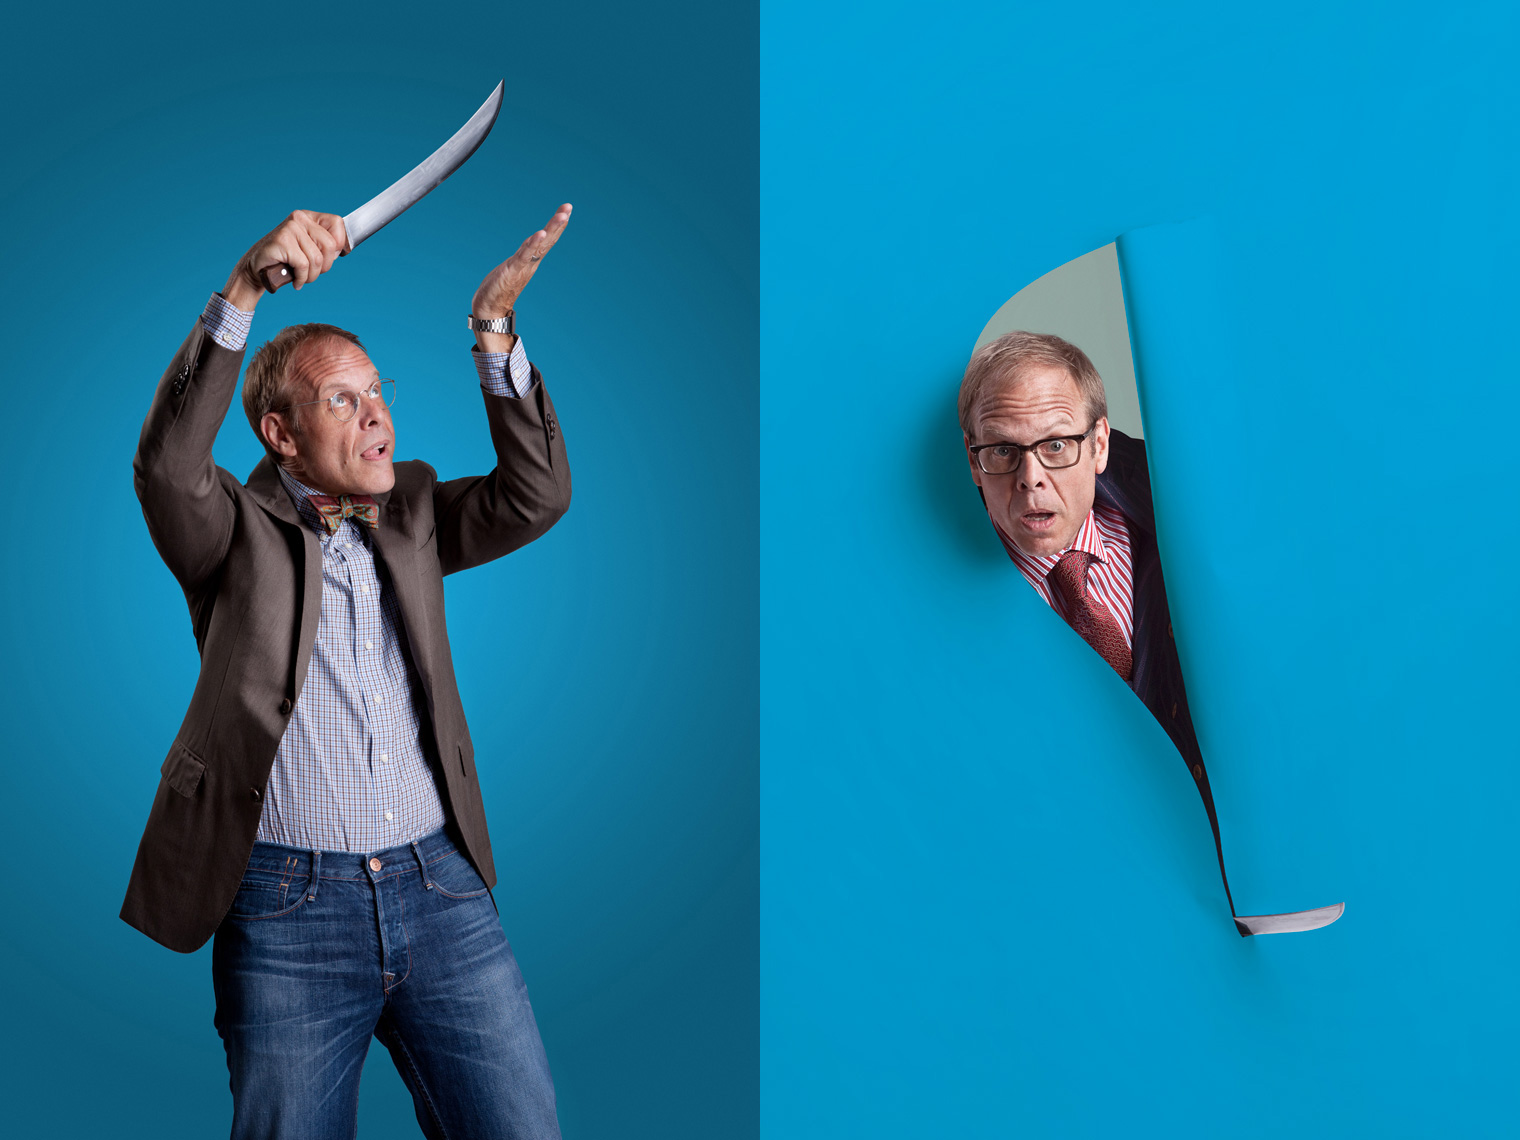 Alton_Brown-pair.jpg